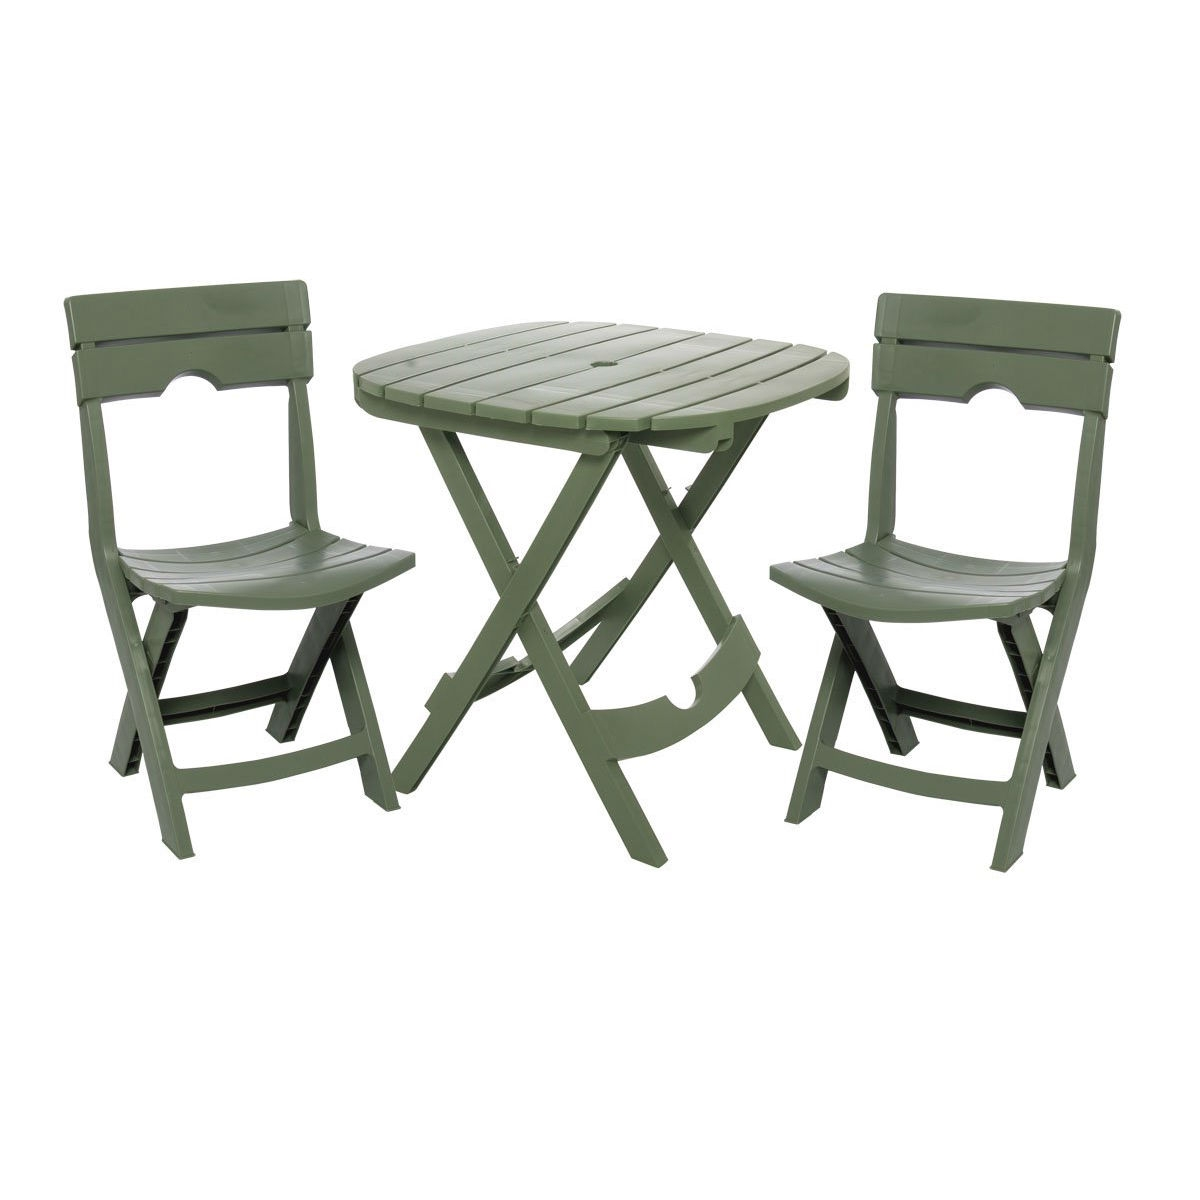 3-Piece Fast Fold Outdoor Furniture Bistro Set in Sage Green, AQCBS899 :  This 3-Piece Fast Fold Outdoor Furniture Bistro Set in Sage Green is the ideal on-the-go bistro set. Folding quickly and compactly, the set travels along for any outdoor recreation, including camping, picnics, tailgating, and more. Use in the backyard for extra seating at parties, or on the balcony or patio. Comfortable and sturdy, this resin set is a long-lasting value. Proudly made in the USA. Built-in umbrella hole holds most standard umbrellas; High-quality resin material is lightweight enough for everyone to handle.